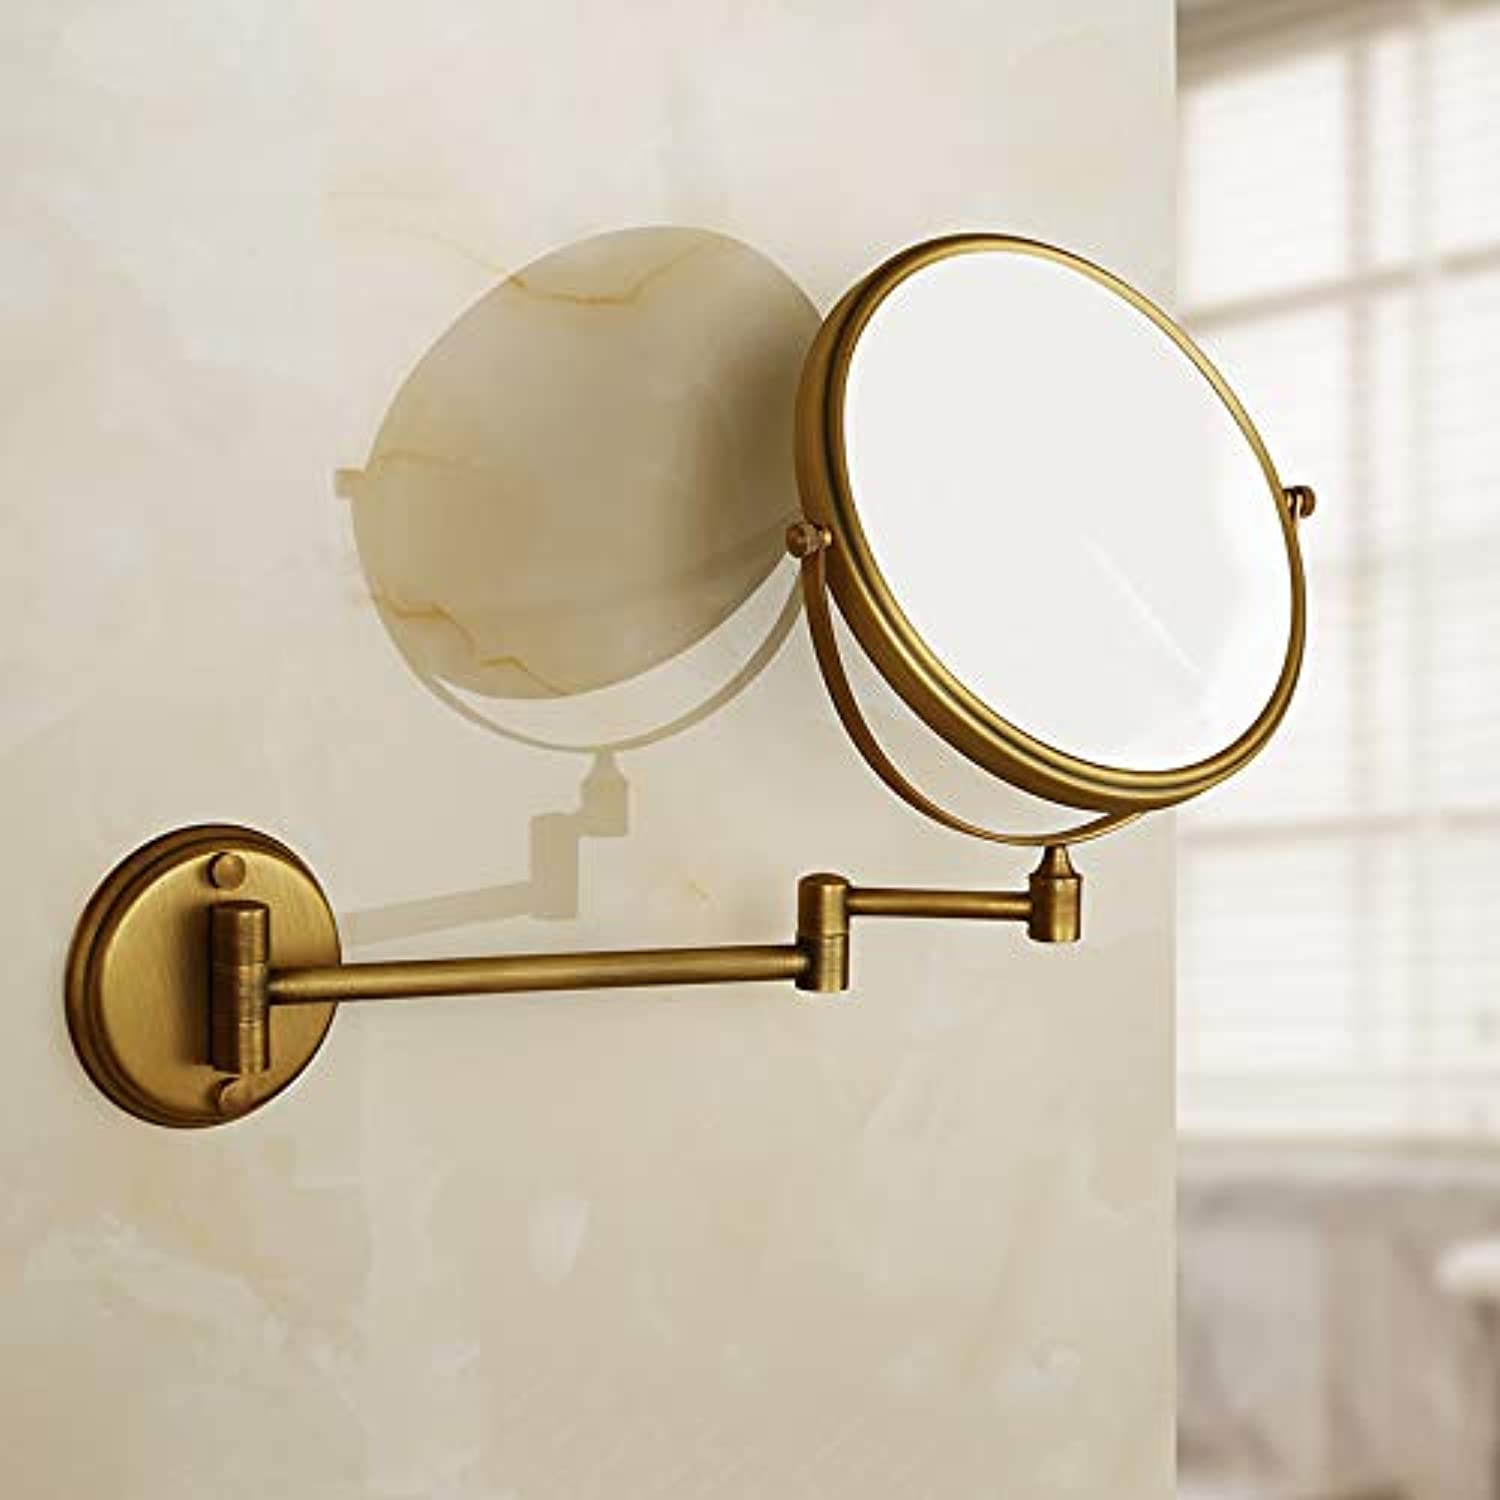 LUDSUY All Copper Beauty Mirror Beauty Mirror Antique Mirror Sided Mirror Magnifying Beauty Mirror, A